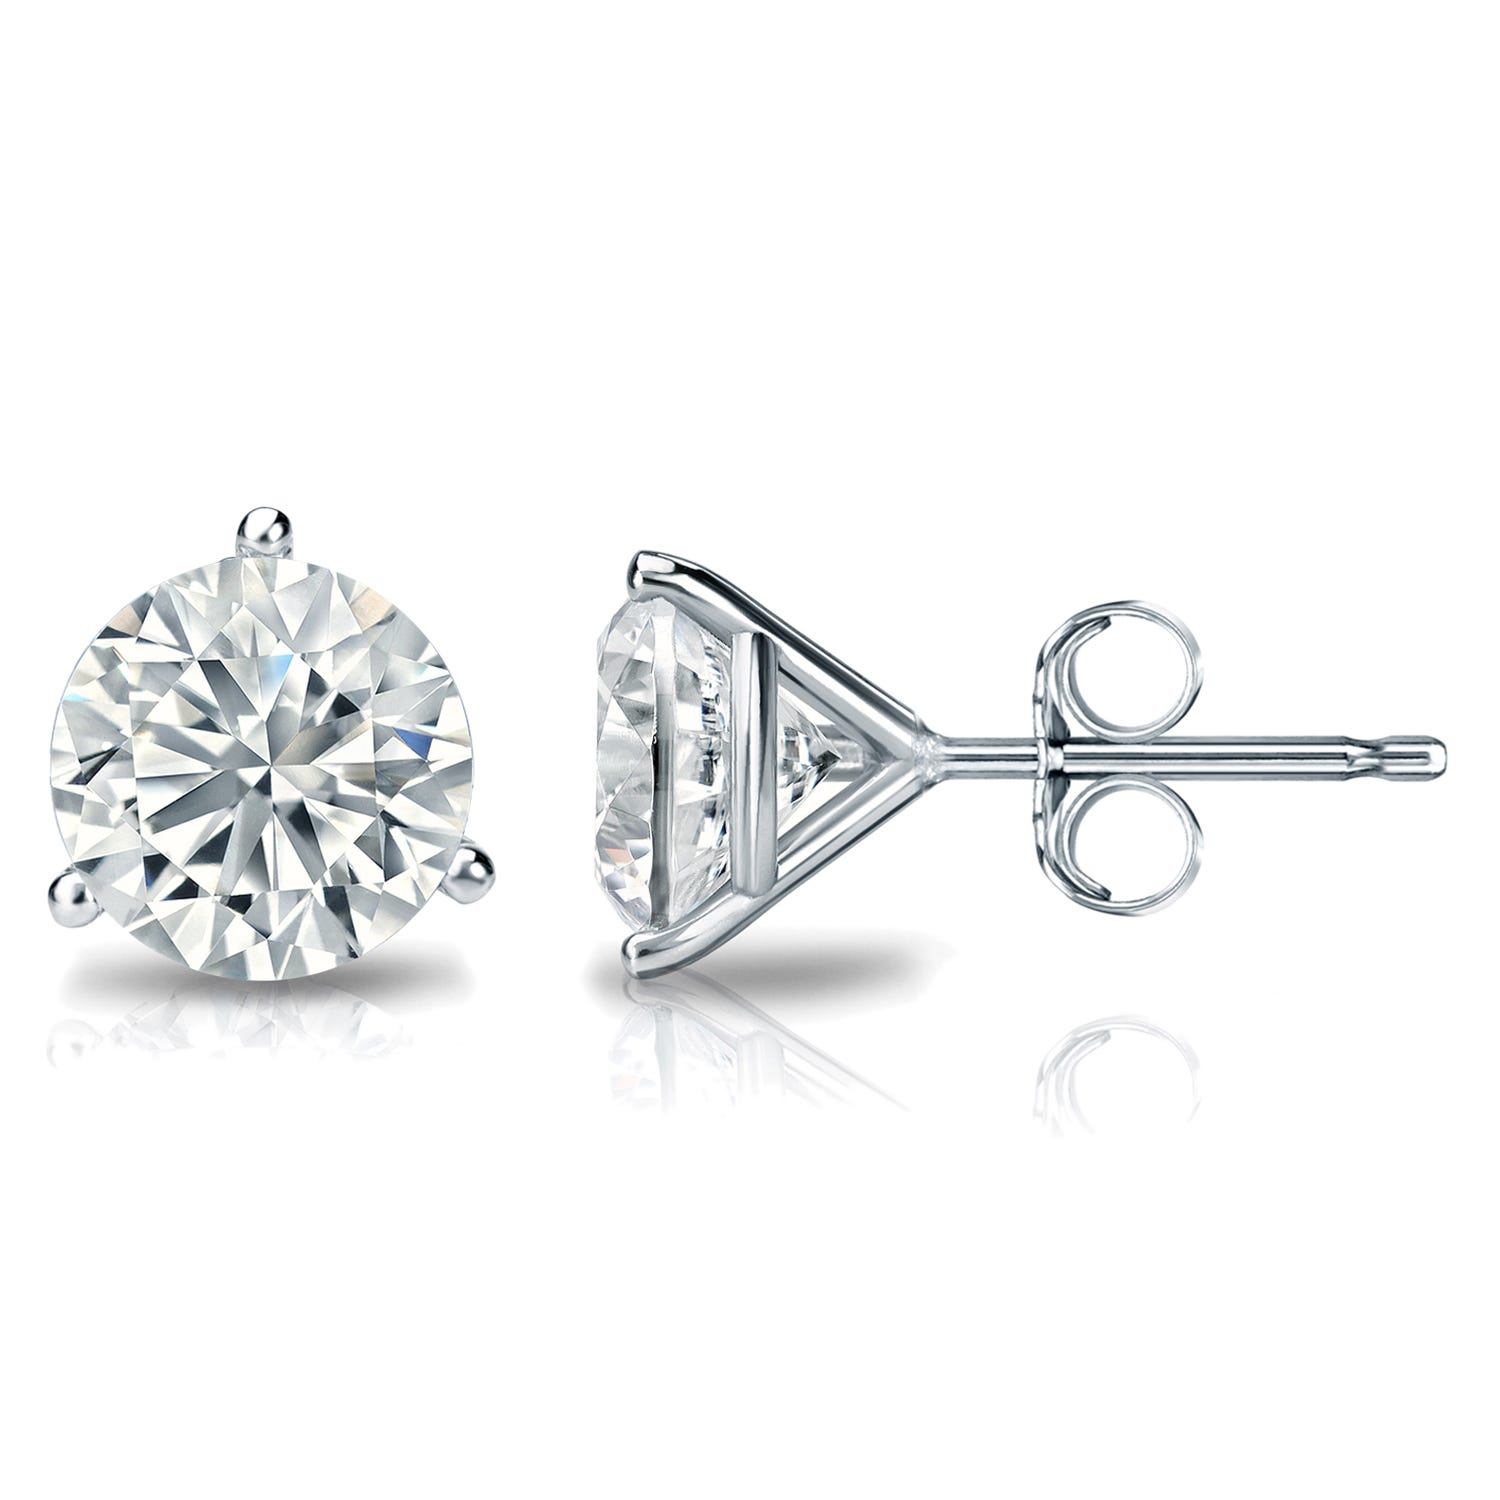 2 CTTW Round Diamond Solitaire Stud Earrings IJ SI1 in 18K White Gold IGI Certified 3-Prong Setting